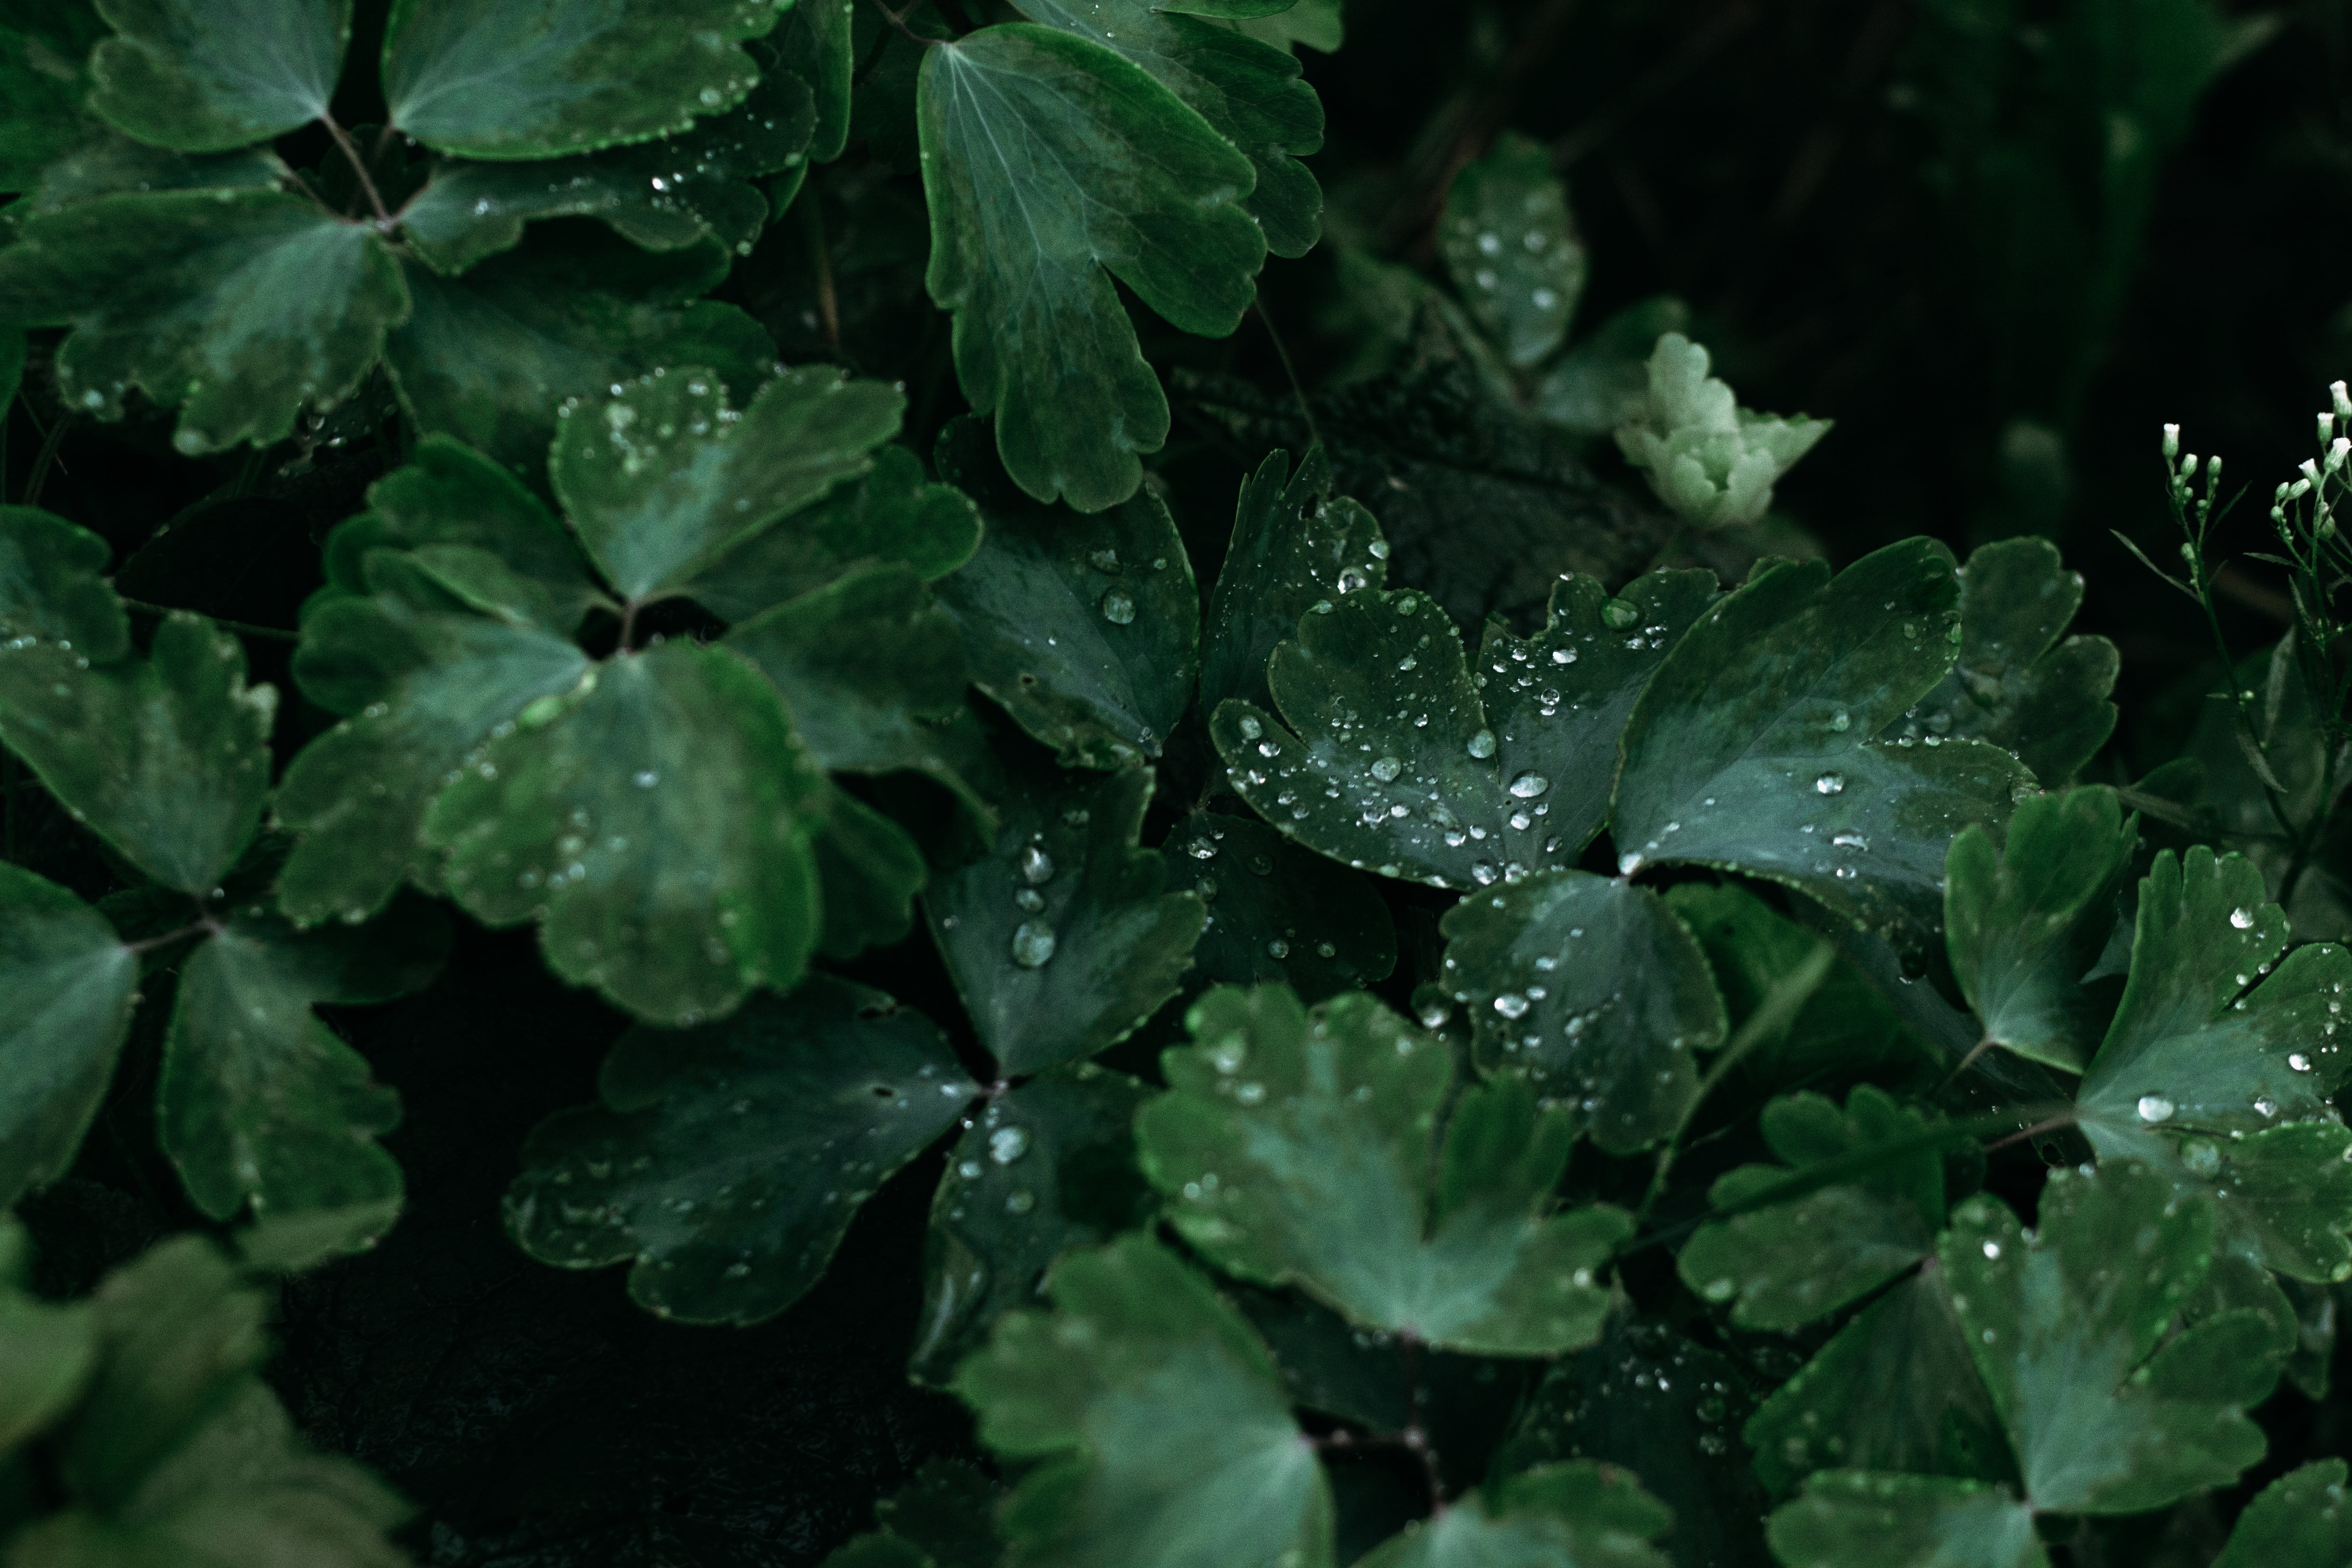 Green Leaves in Macro Shot Photography